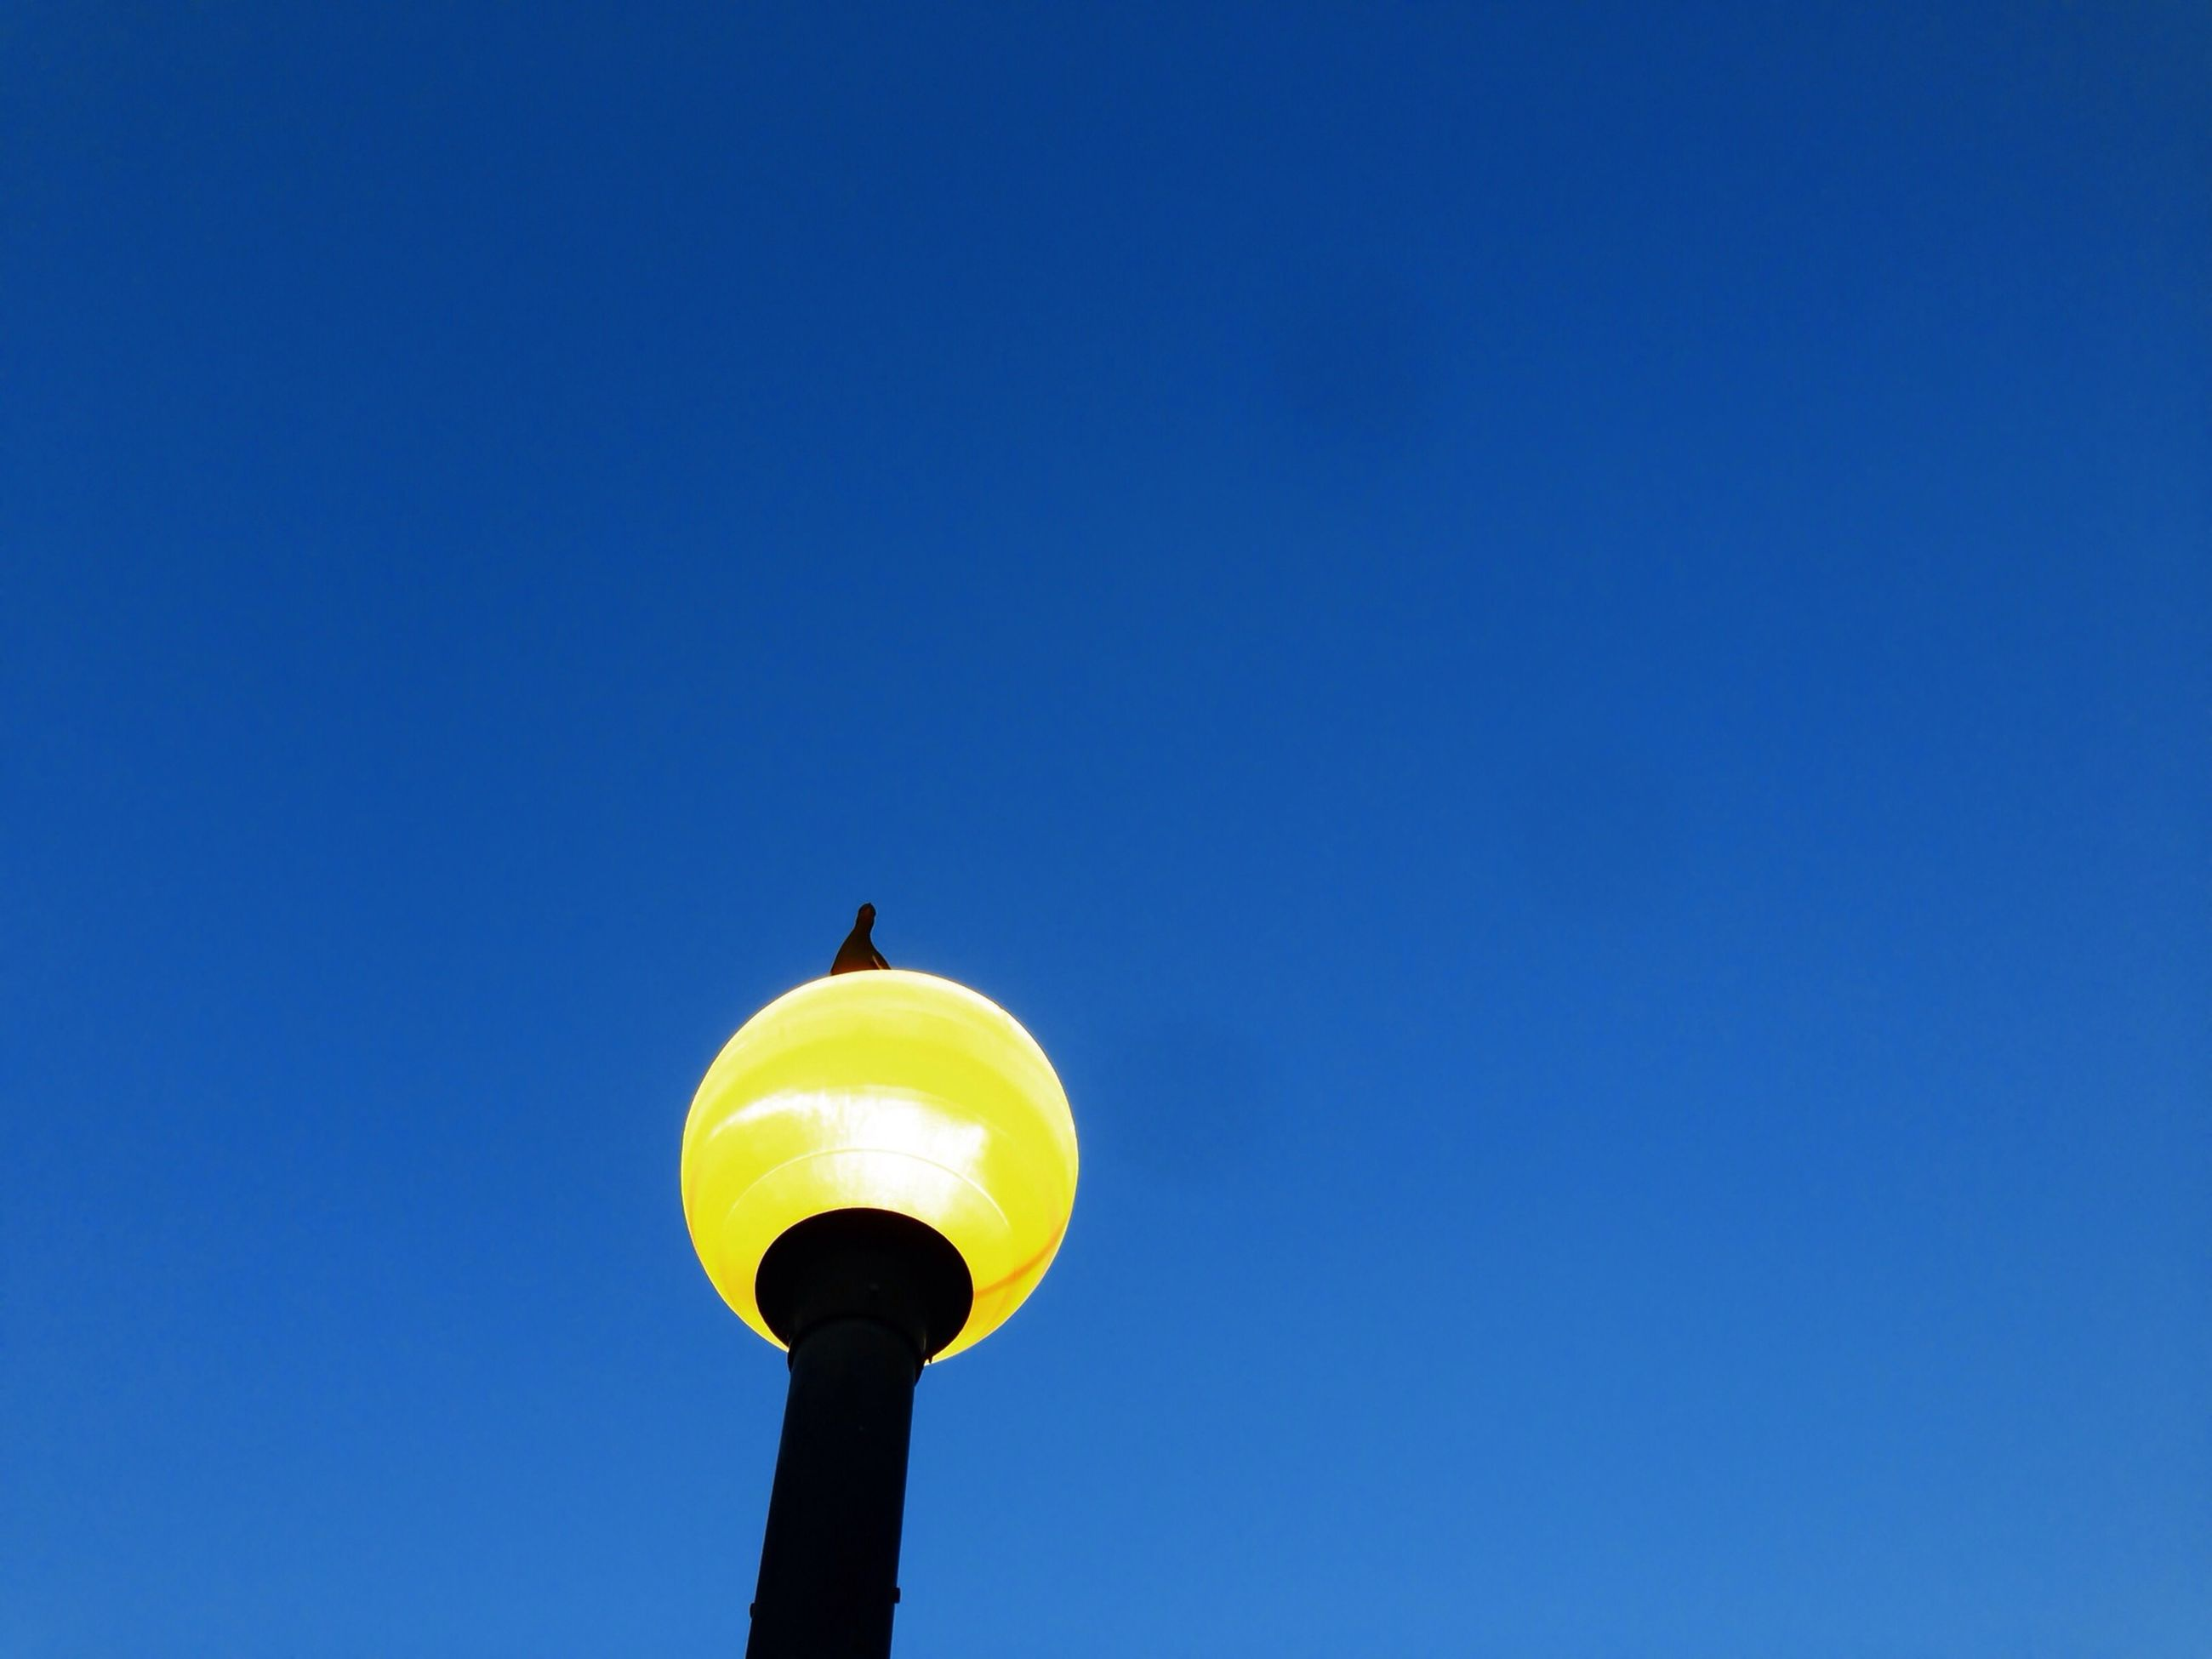 clear sky, copy space, low angle view, lighting equipment, street light, blue, built structure, architecture, illuminated, building exterior, yellow, communications tower, sphere, tower, electric light, high section, lamp post, outdoors, guidance, no people